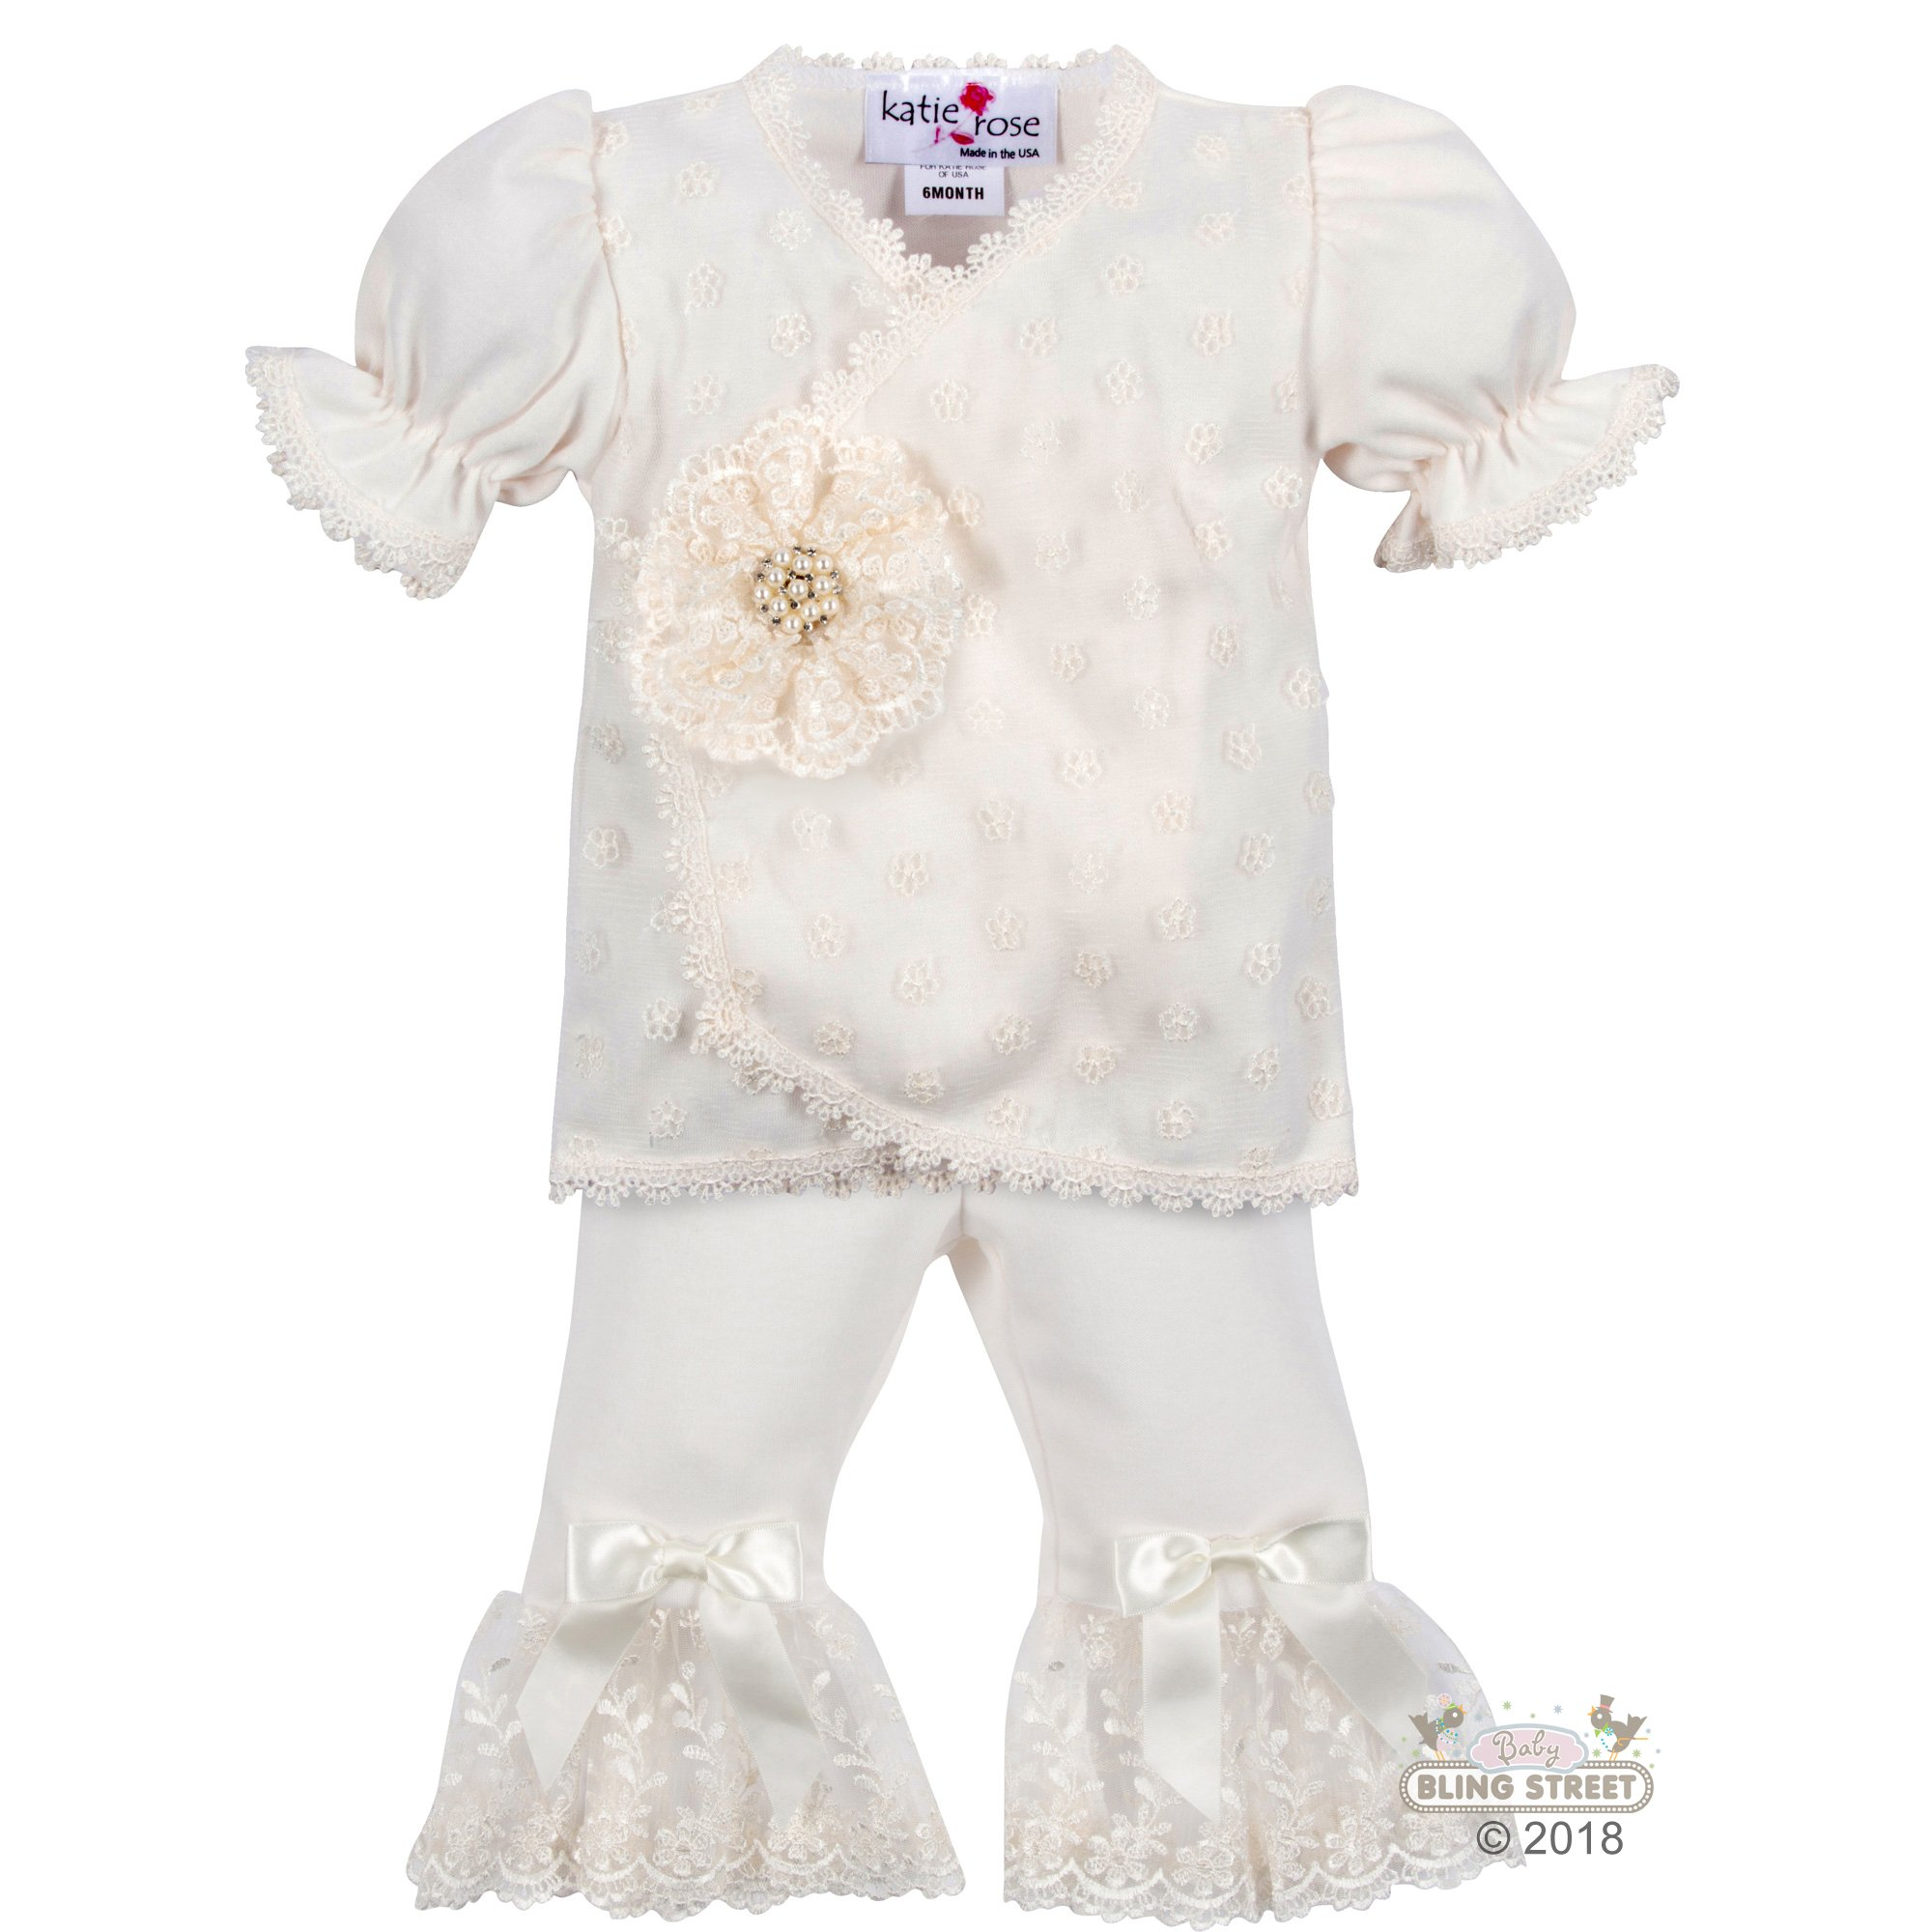 5b5258725154 Katie Rose Lace Lee Ann Romper Dress for Newborn and Baby Girls